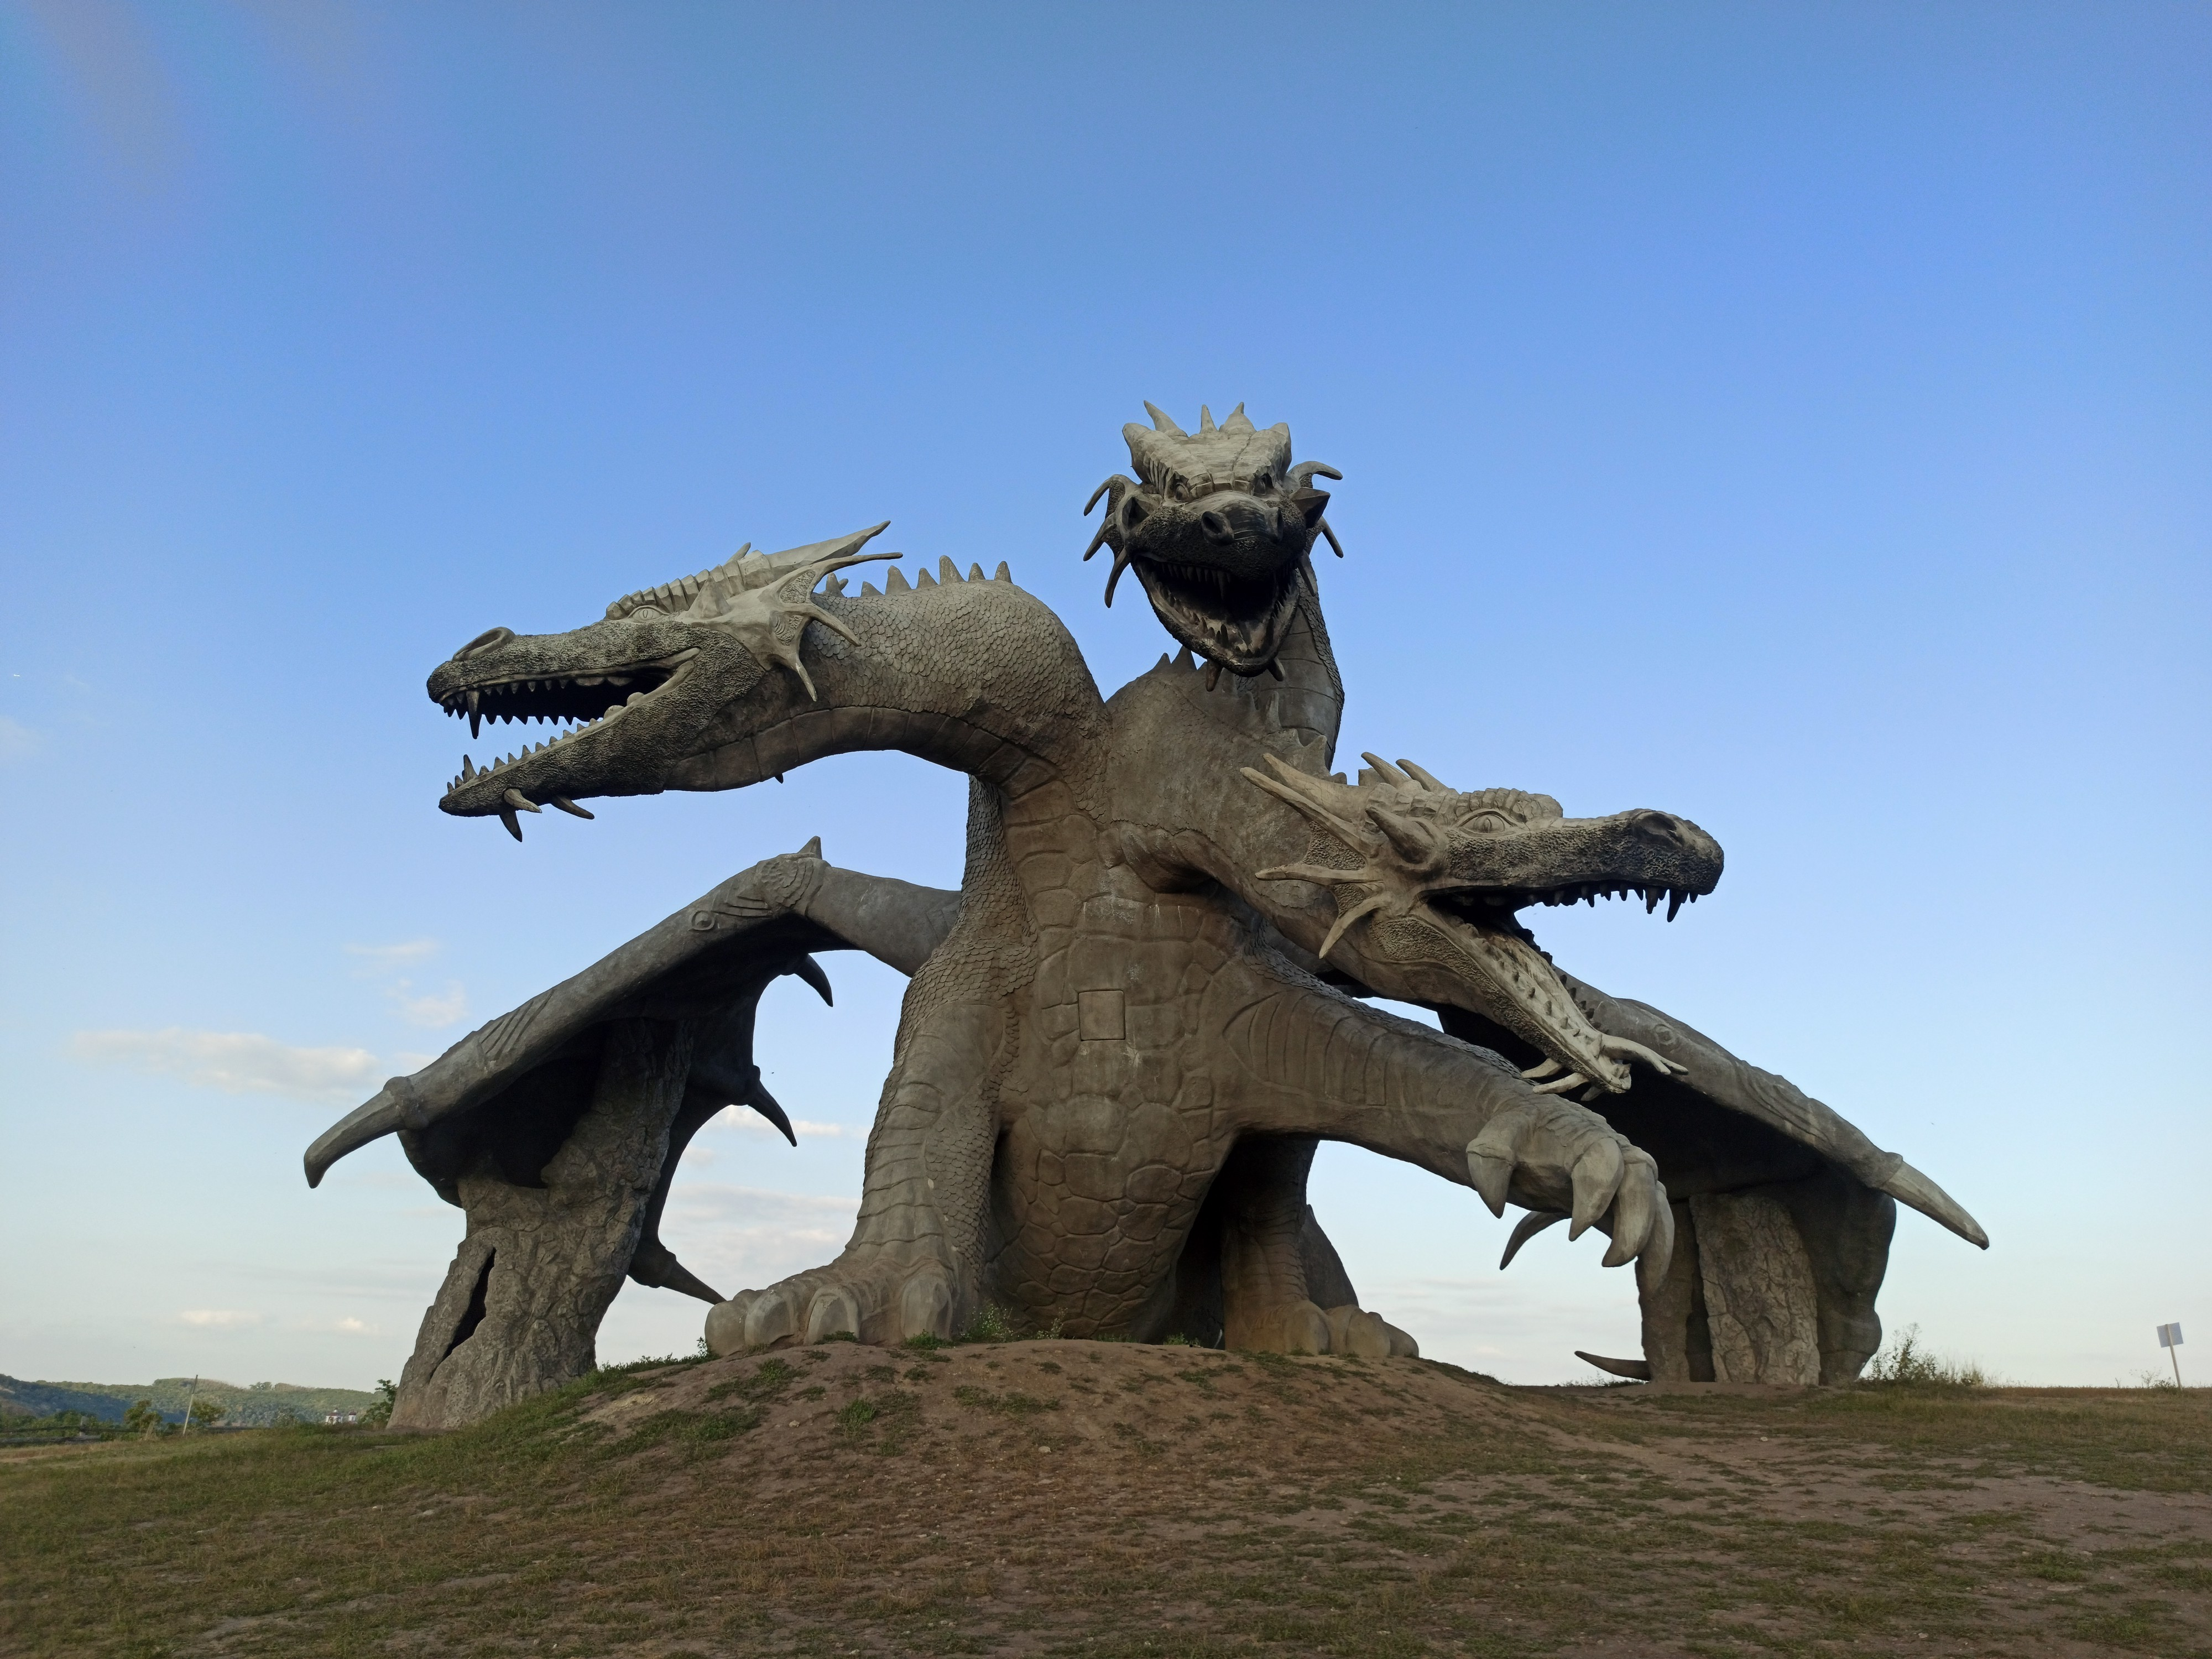 Two-headed dragon sculpture.